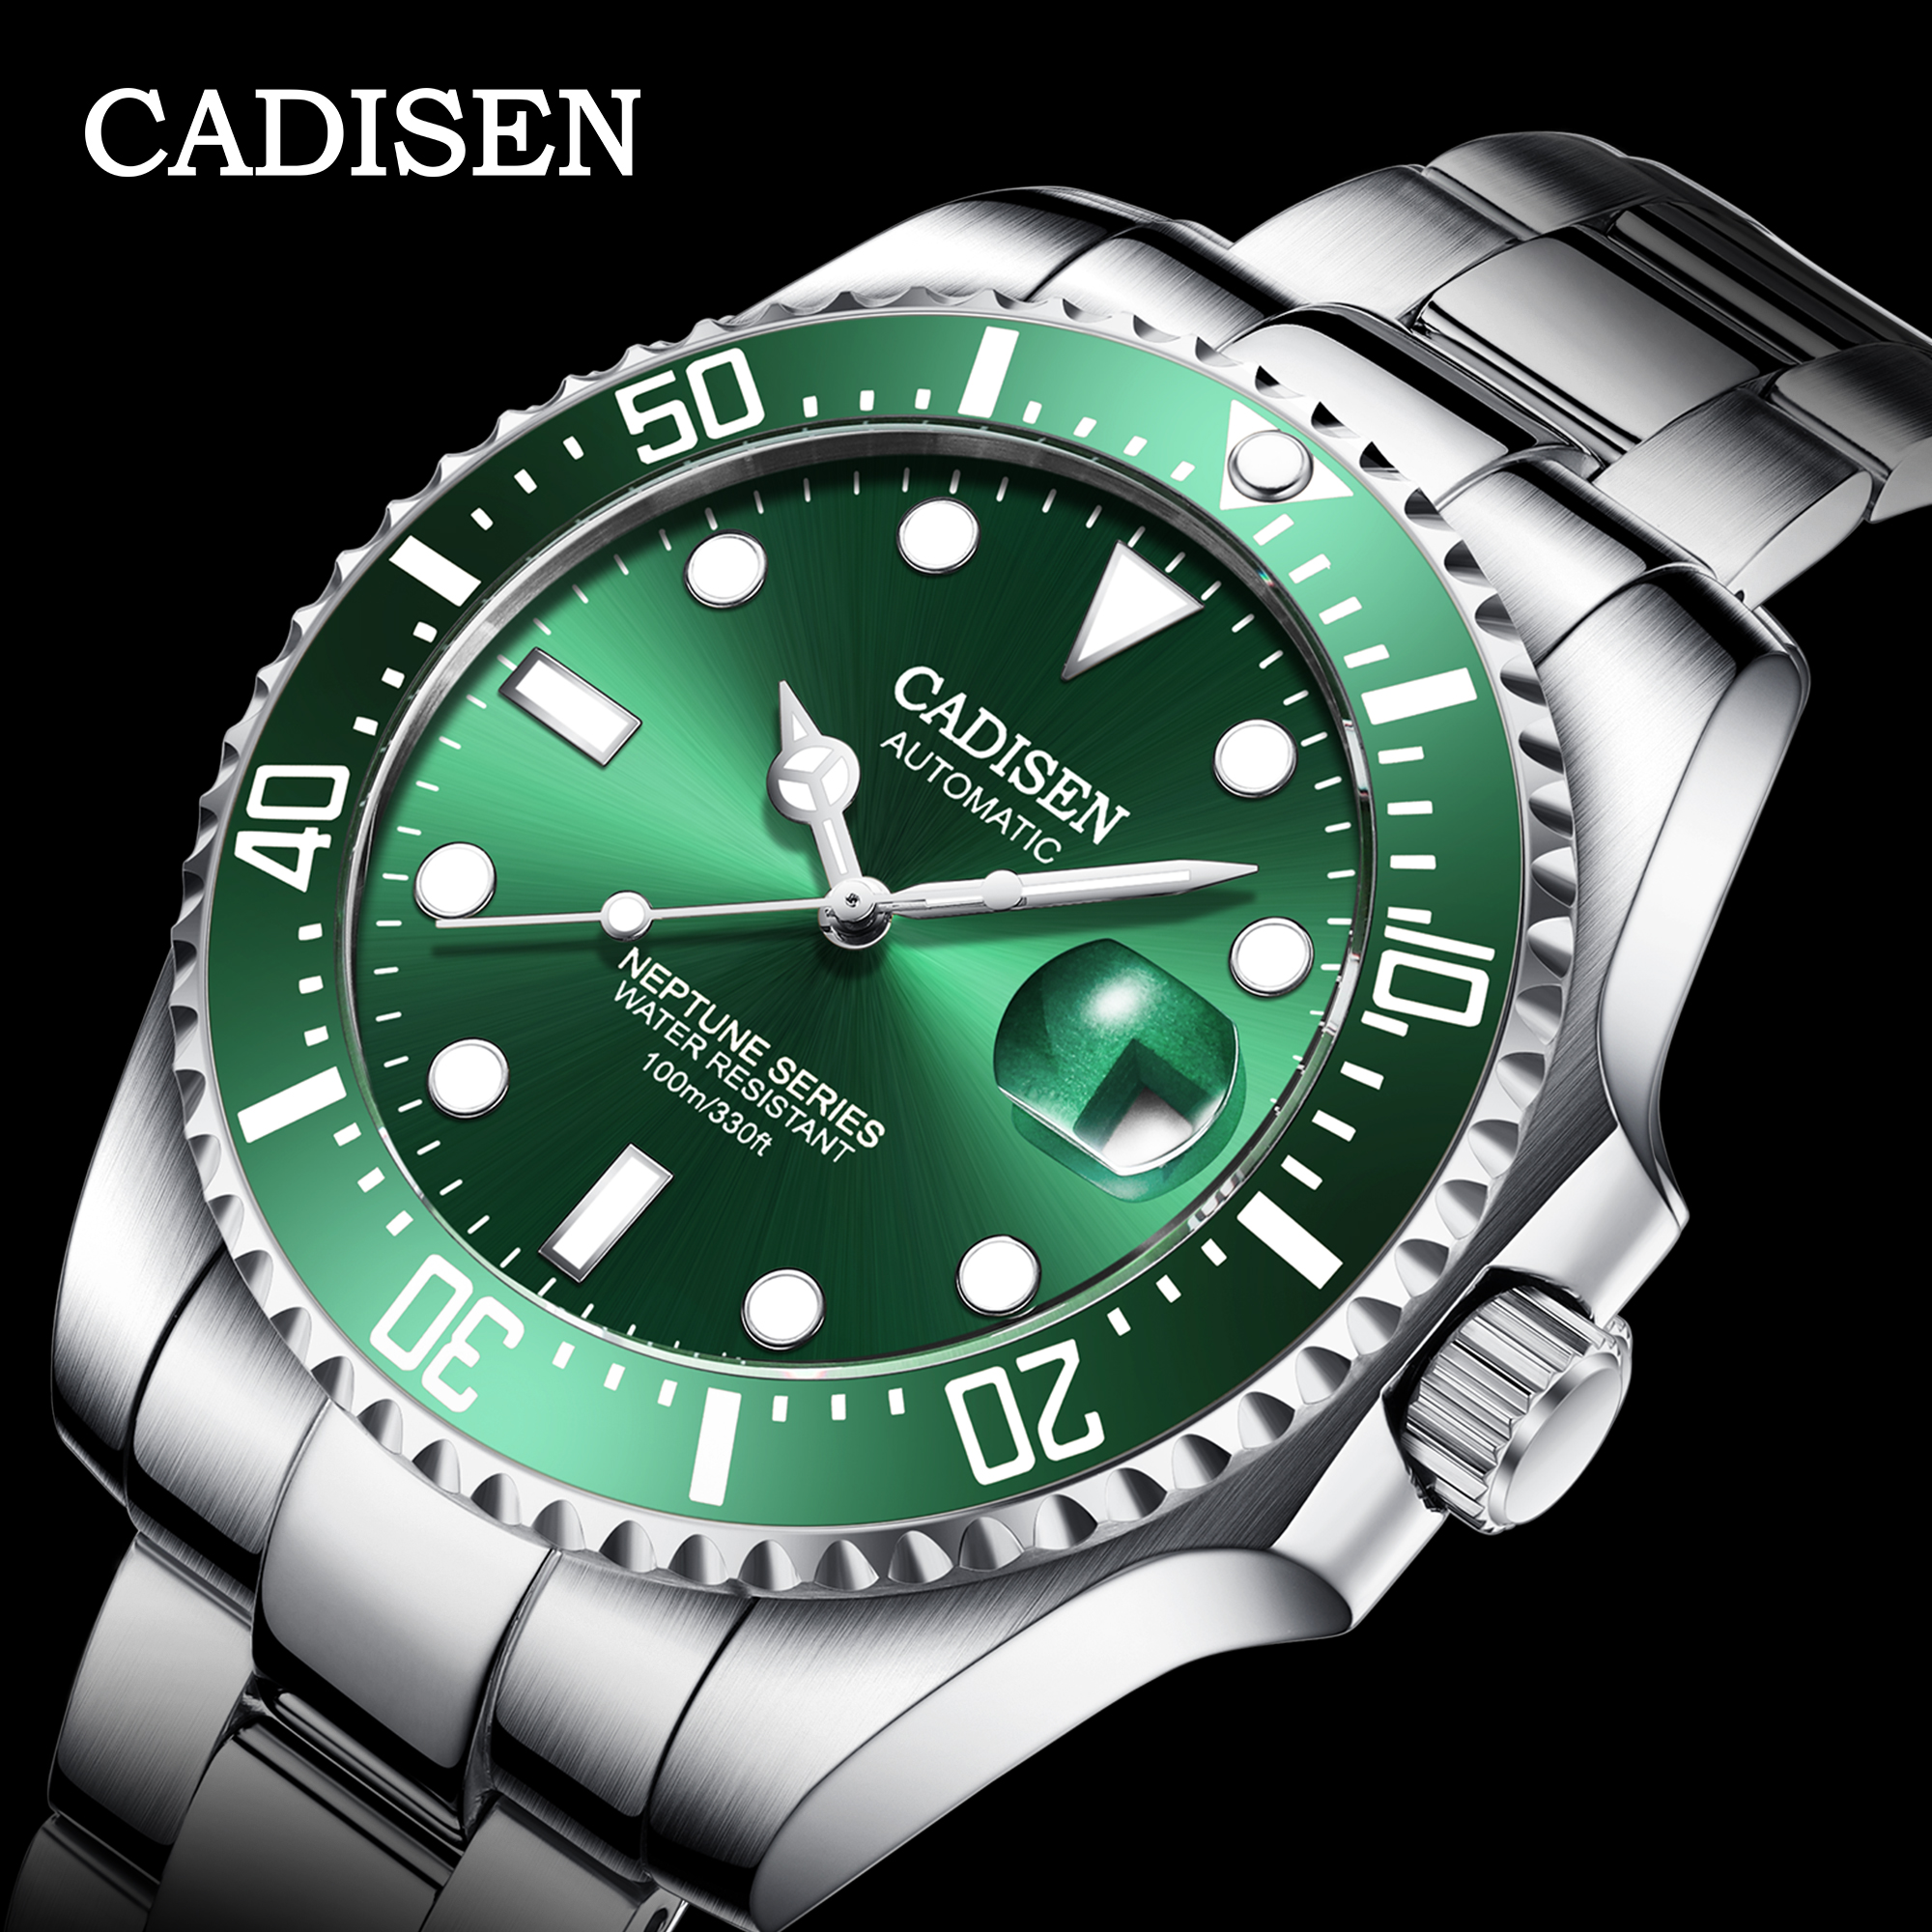 CADISEN Brand 2020 New Automatic Mechanical Men Watch <font><b>100M</b></font> Waterproof Male NH35A Movement Sports Wrist Watch Relogio Masculino image